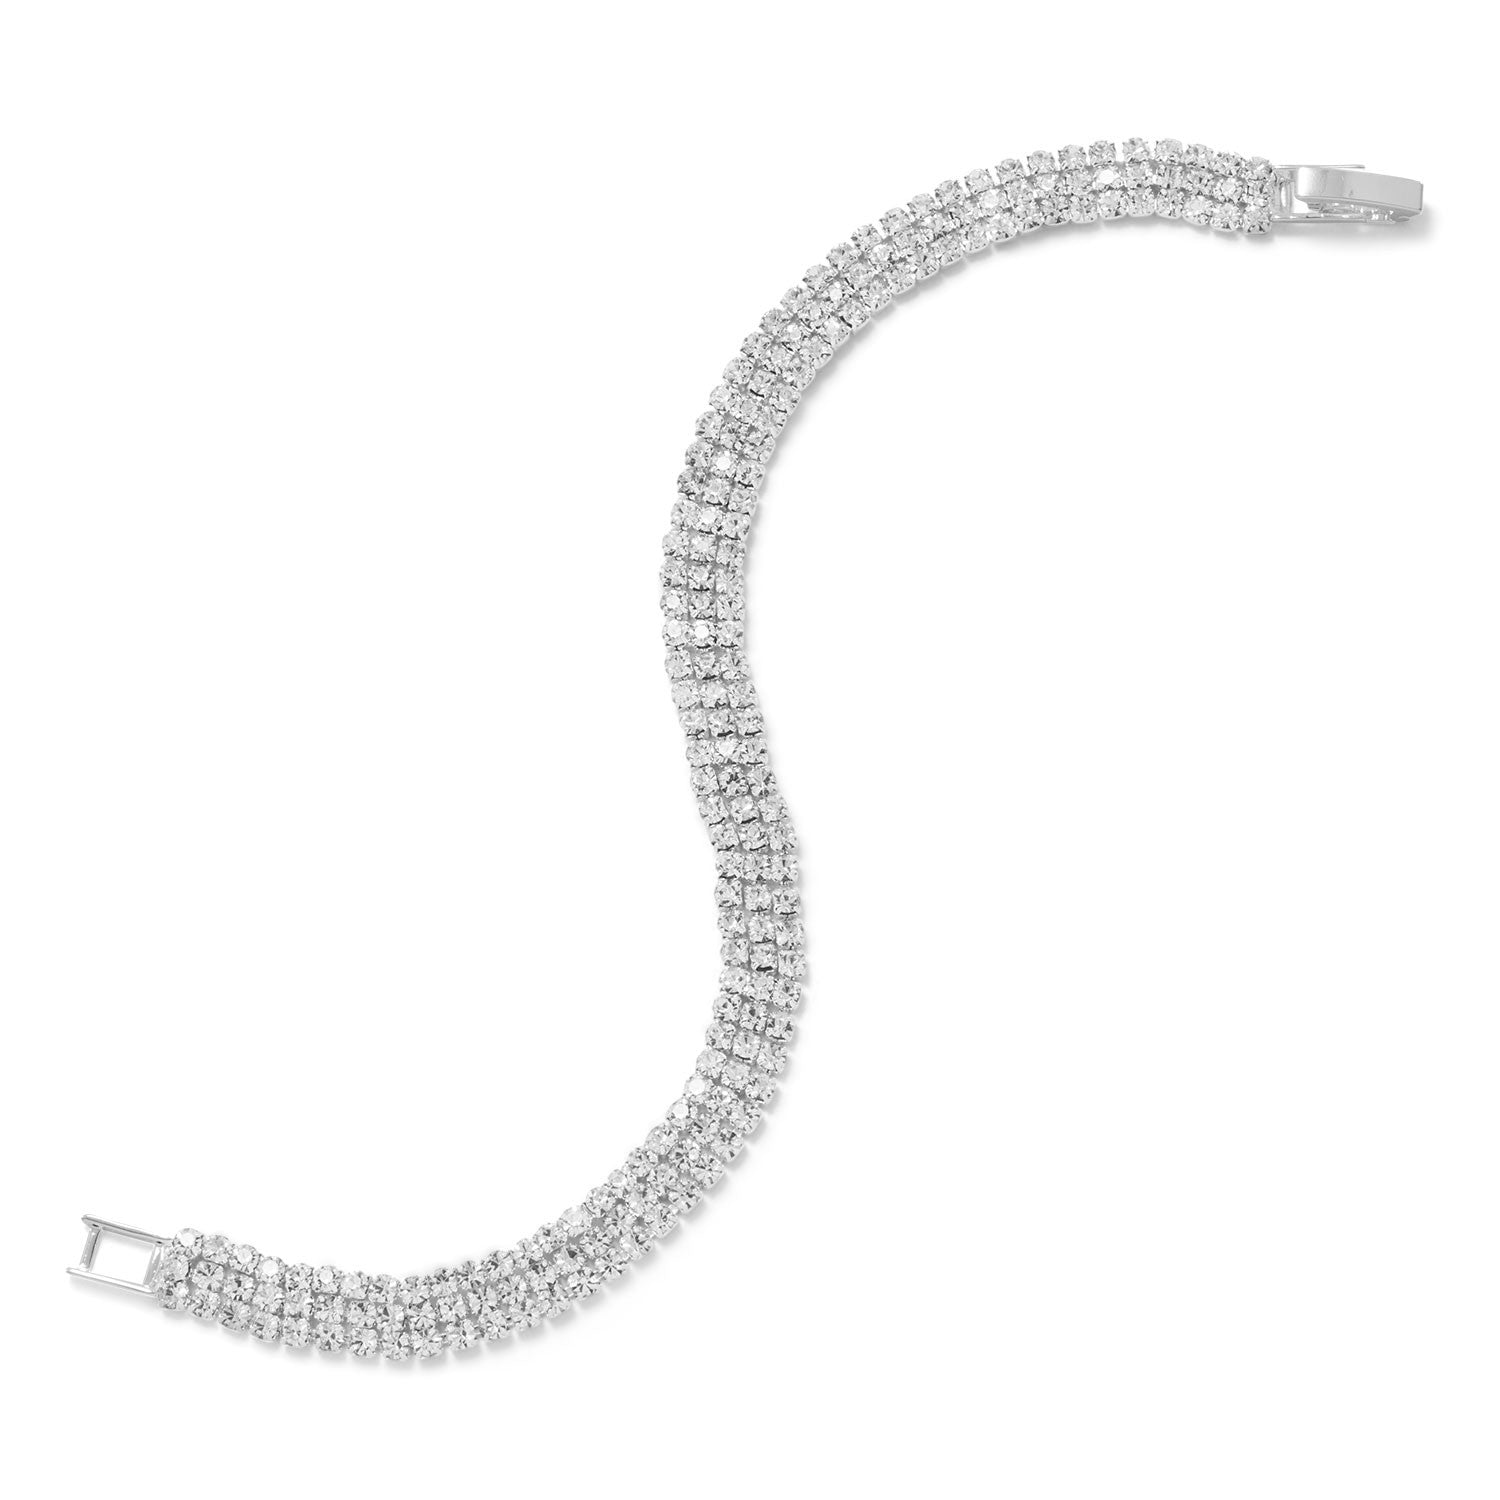 ''7'''' Three Row Crystal Fashion TENNIS BRACELET''